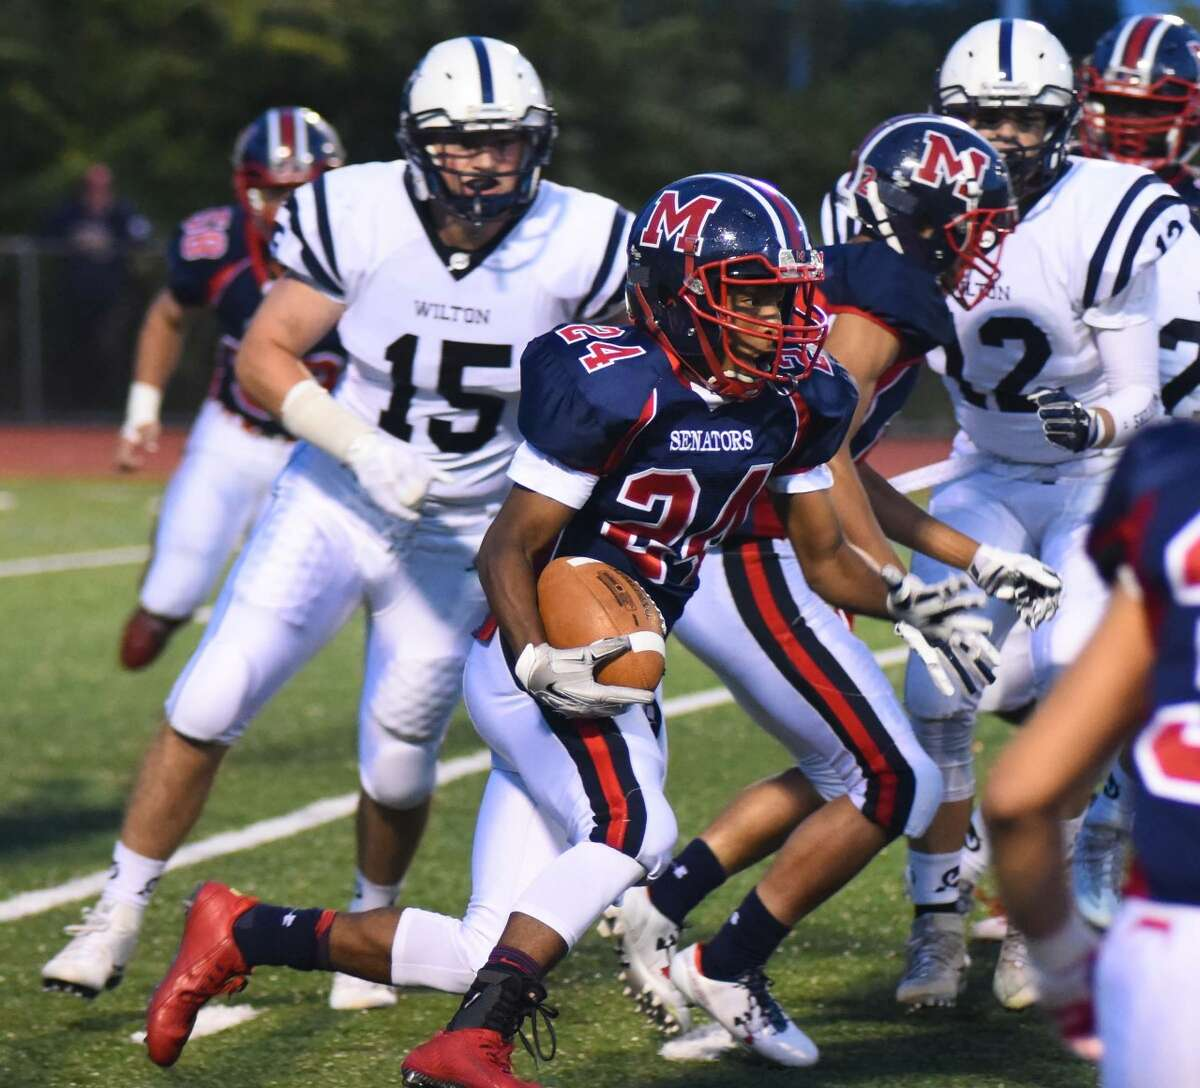 Brien McMahon's Eric Day (24) looks for running room during the first quarter of Friday's FCIAC football game against Wilton at Casagrande Field in Norwalk. Wilton defeated McMahon 28-7.